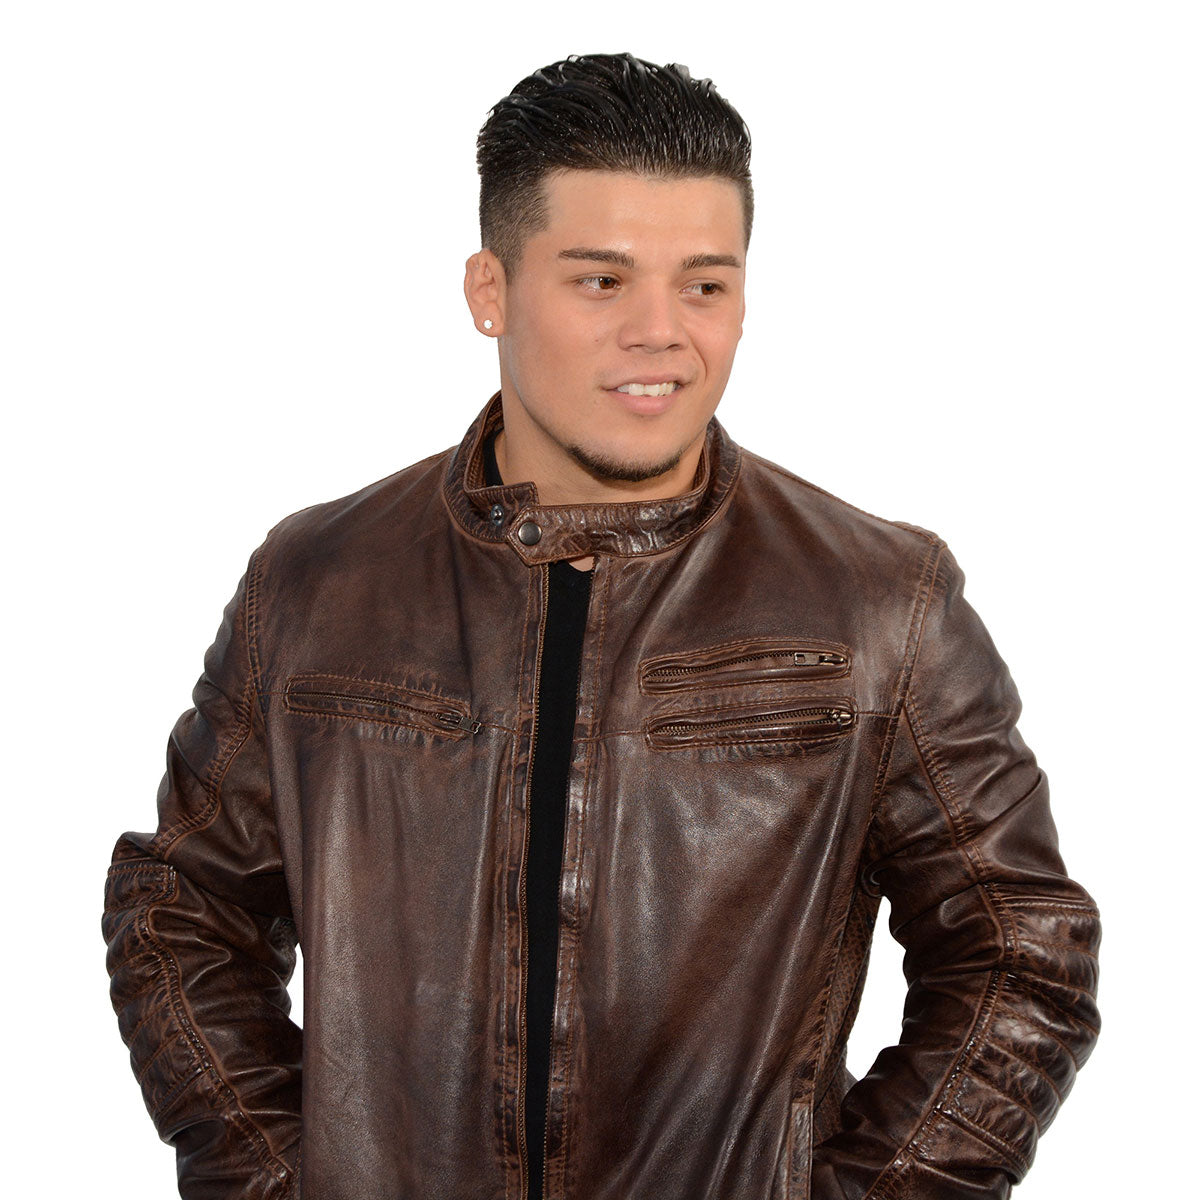 Milwaukee Leather SFM1805 Men's Brown Side Stitch Cafe Racer Lambskin